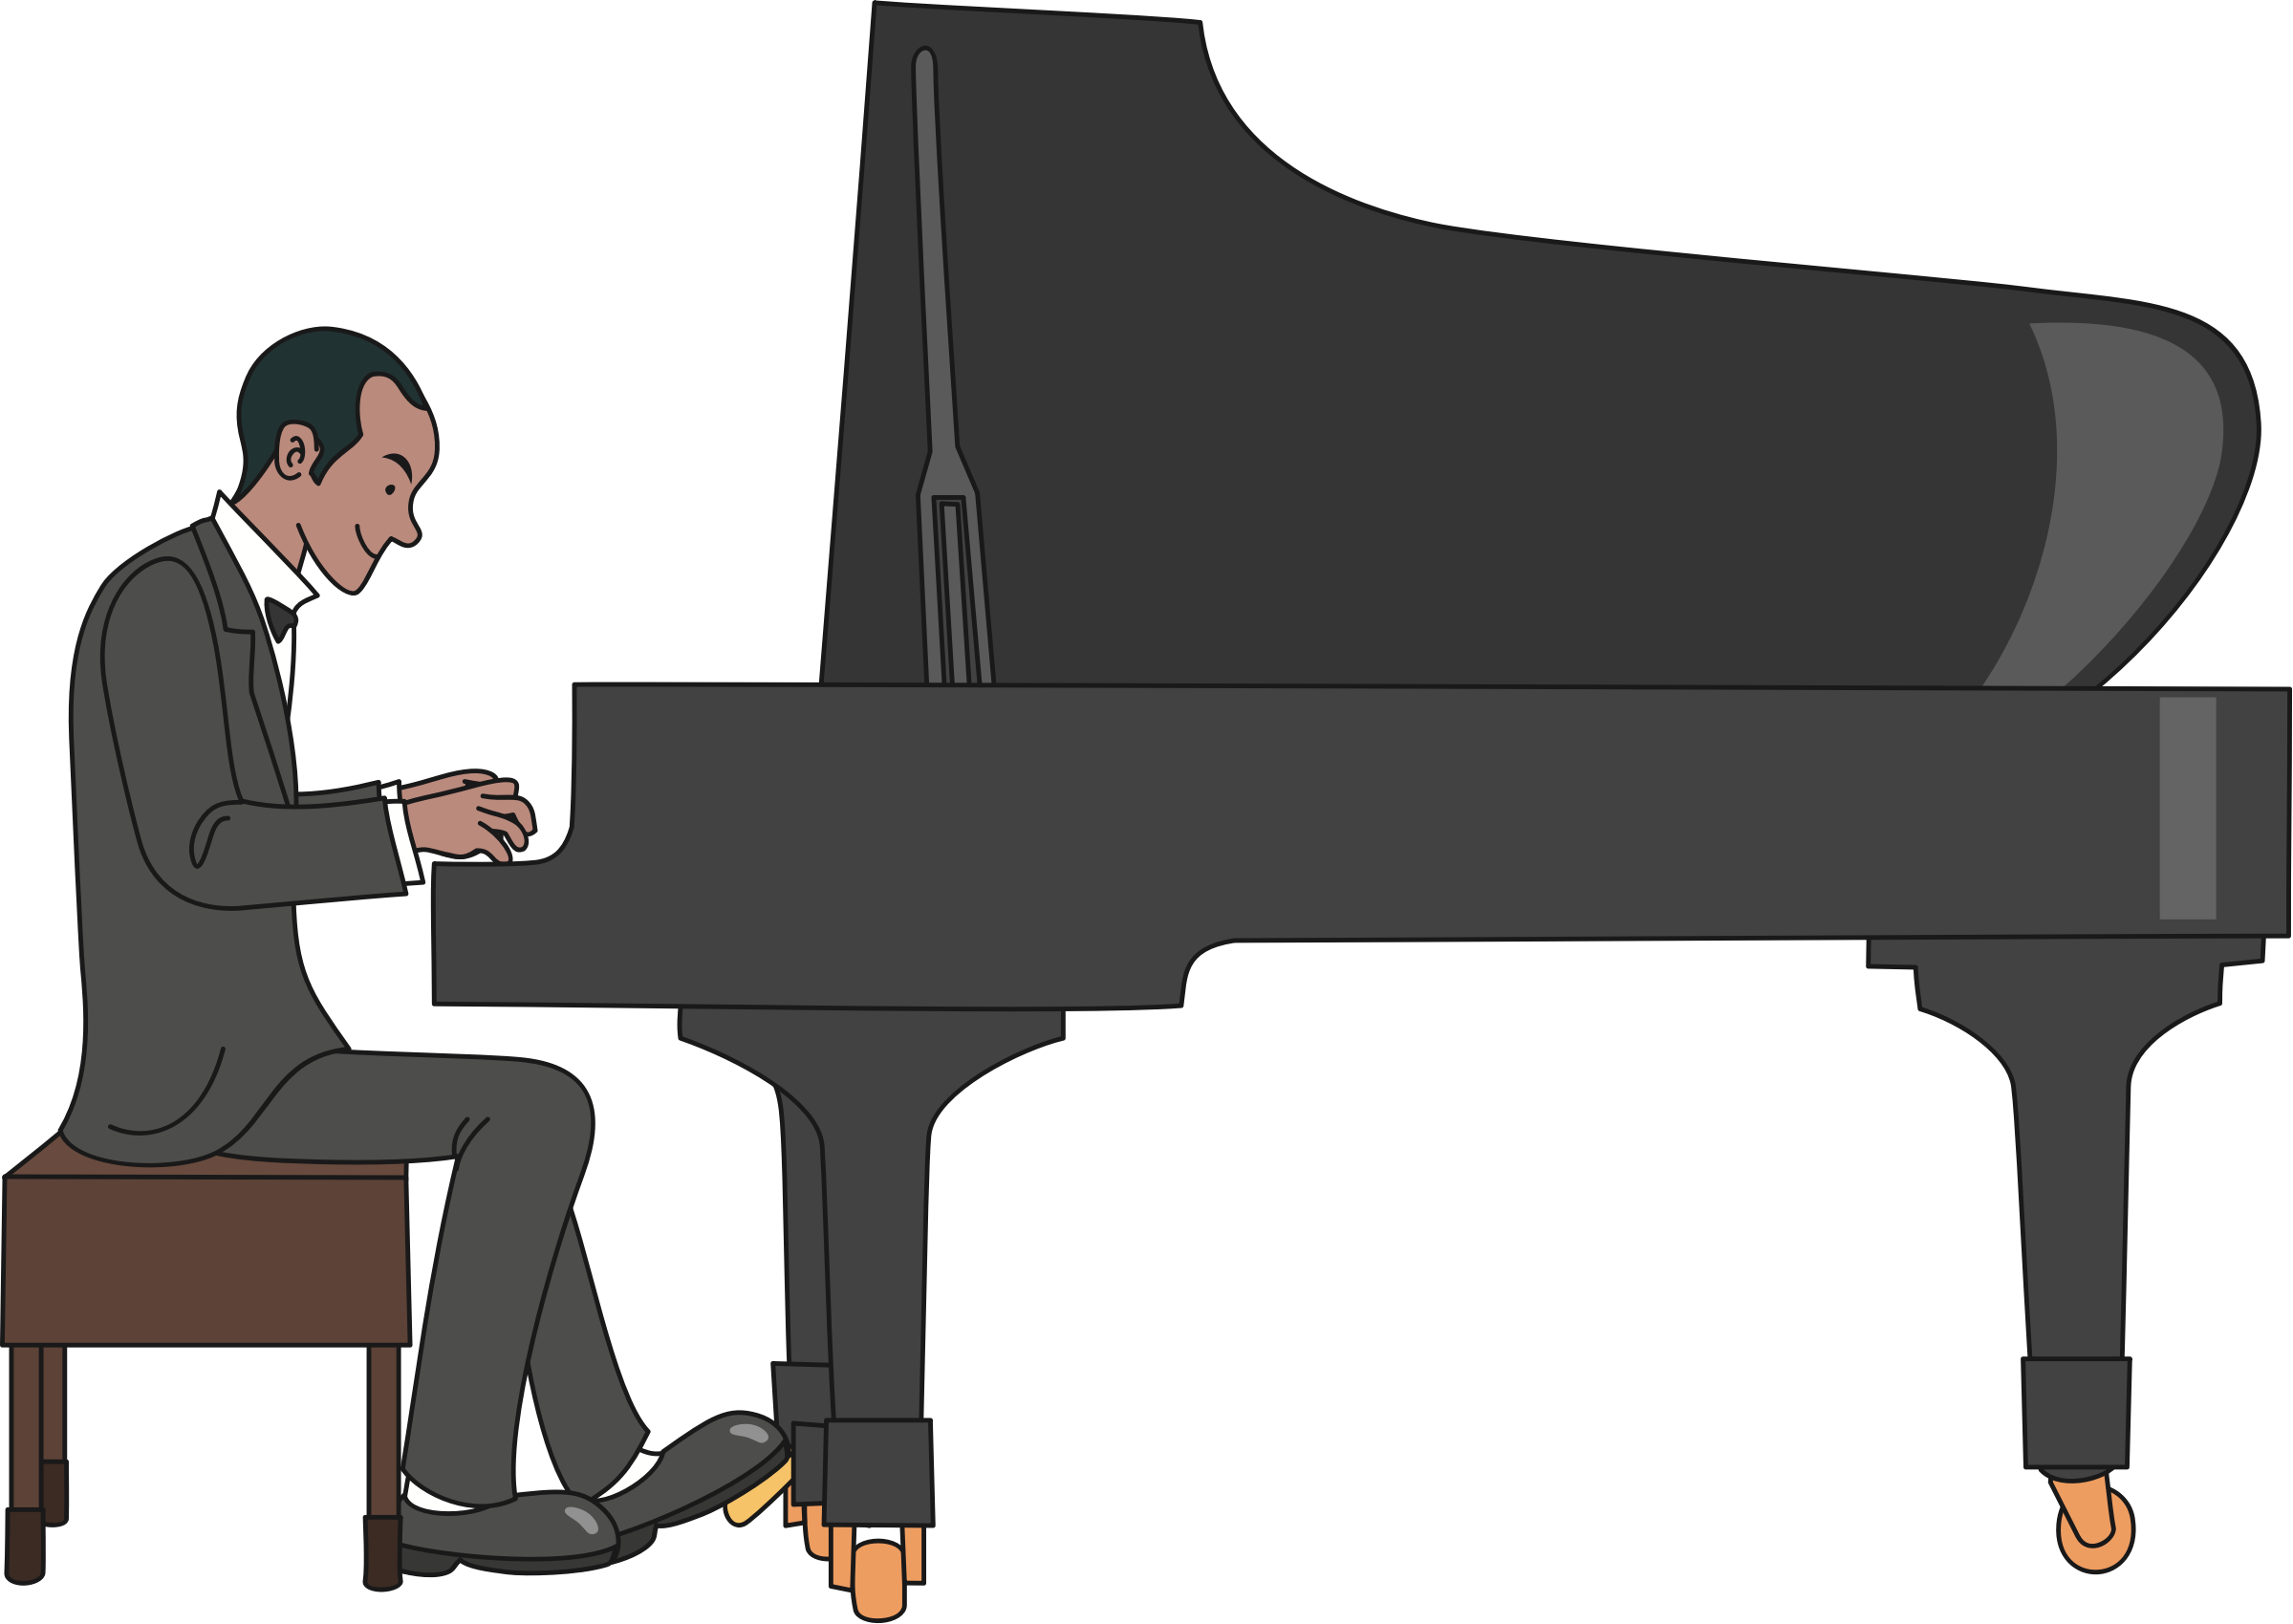 Piano clipart pianist. Male big image png